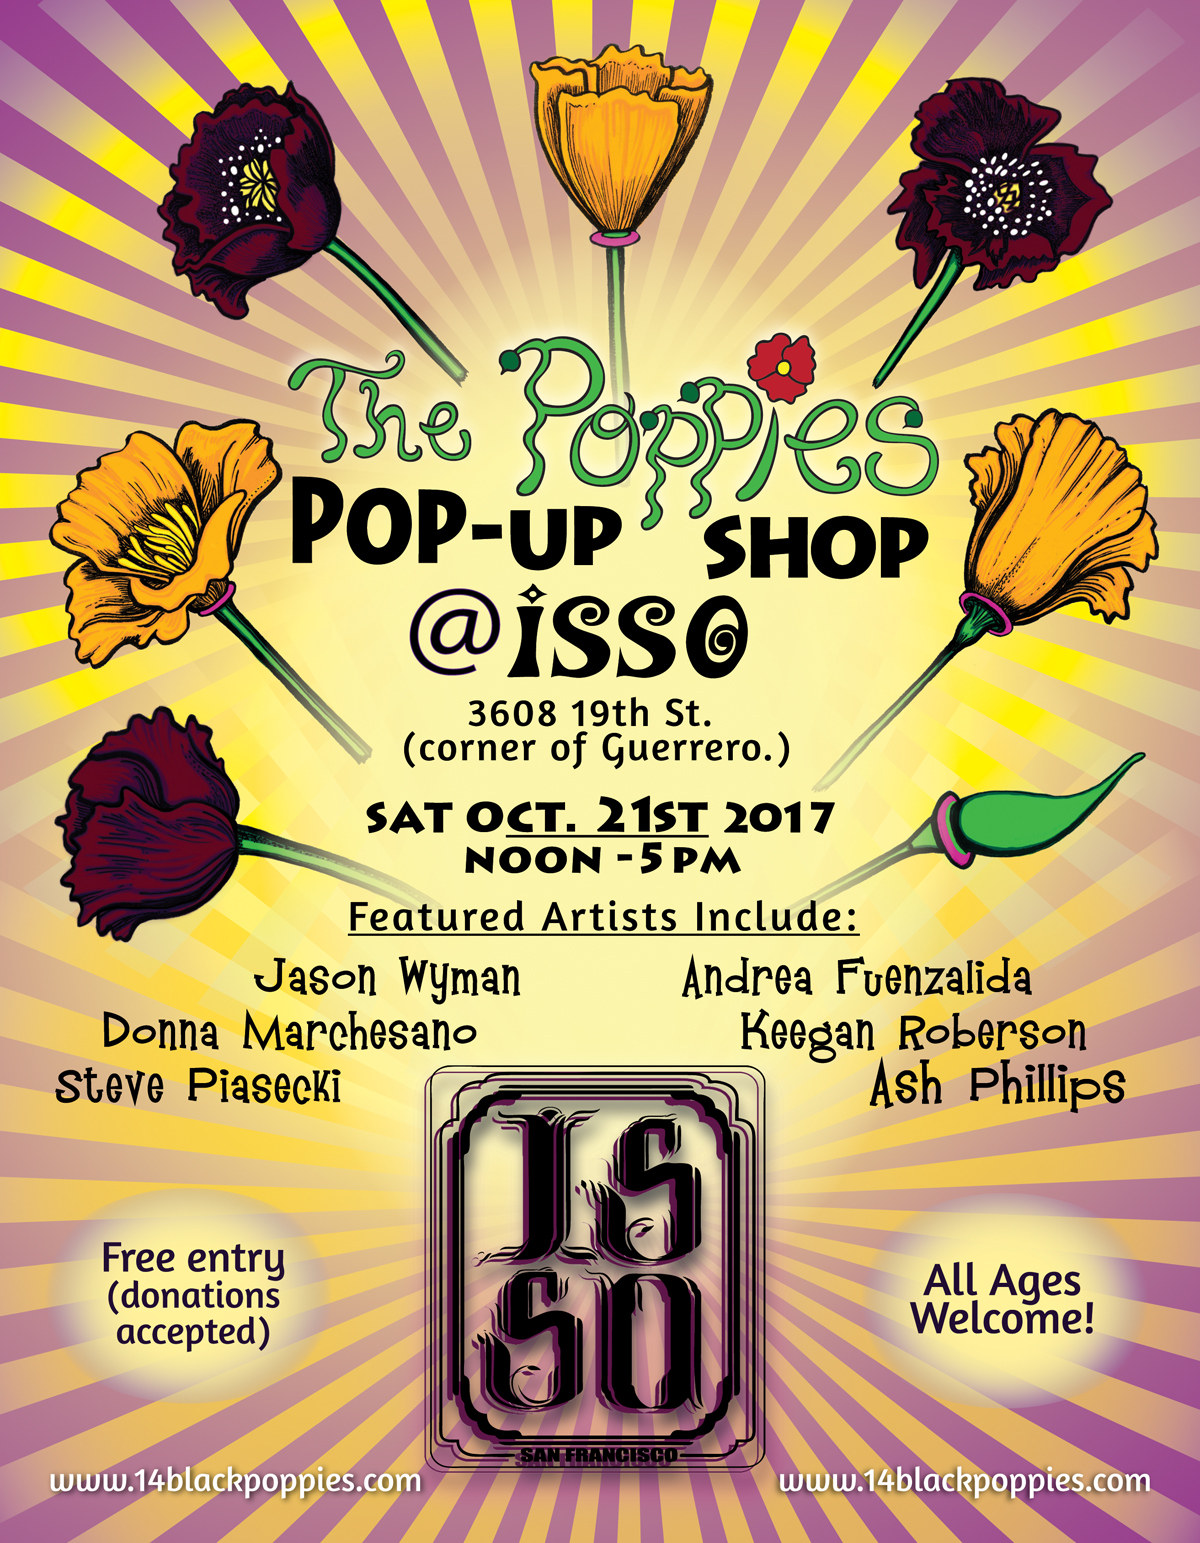 Join artists  J  ason Wyman ,  Andrea Fuenzalida ,  Donna Marchesano ,  Keegan Roberson ,  Steve Piasecki , and  Ash Phillips  for a special edition of The Poppies, a Pop-Up Shop at ISSO!  It's the perfect spot to check out fine art works and handcrafted merchandise. Pick up something for yourself or a loved one. Items for sale include metal prints, Voodoo Kitties, postcards, paintings, zines and chapbooks, and more! You can even order a CUSTOM neon pop art portrait, ready in about 20 minutes and get your haiku read by our resident Mystic!  This special The Poppies is also a fundraiser for YOHANA. Youth Organizing Home and Neighborhood Action (YOHANA) is a year round multi-cultural program led by low-income Filipino and Latino immigrant youth from South of Market, Tenderloin, Treasure Island and Inner Mission who care about their community and want to make sustainable changes.  ISSO's mission is to change the mentality of fast fashion culture by inspiring clients to reimagine their wardrobe, and breathe new life into old styles. ISSO aims to enrich the lives of clients through personal styling, providing the tools to feel confident and empowered, while advocating for sustainable fashion choices.   MORE INFO